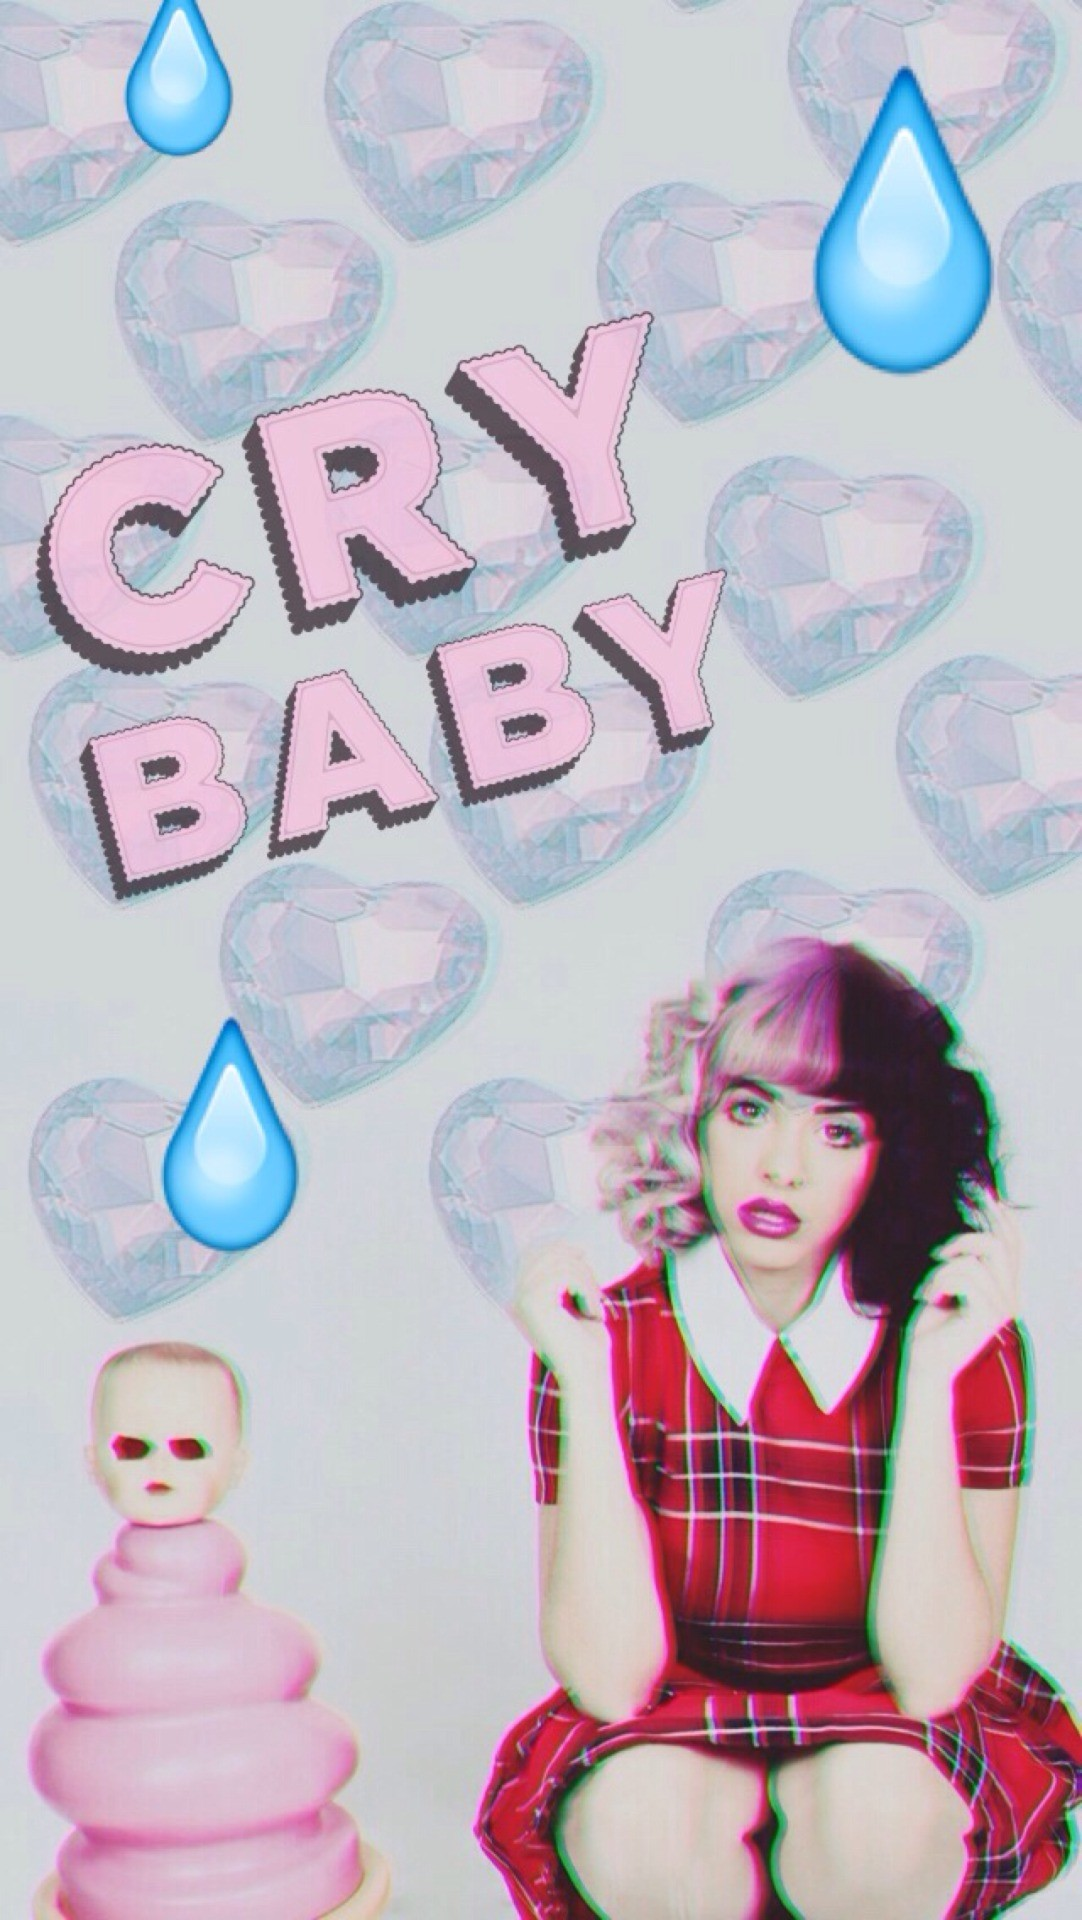 Computer Lock Screen Wallpapers Girls Melanie Martinez Cry Baby Wallpaper 56 Images